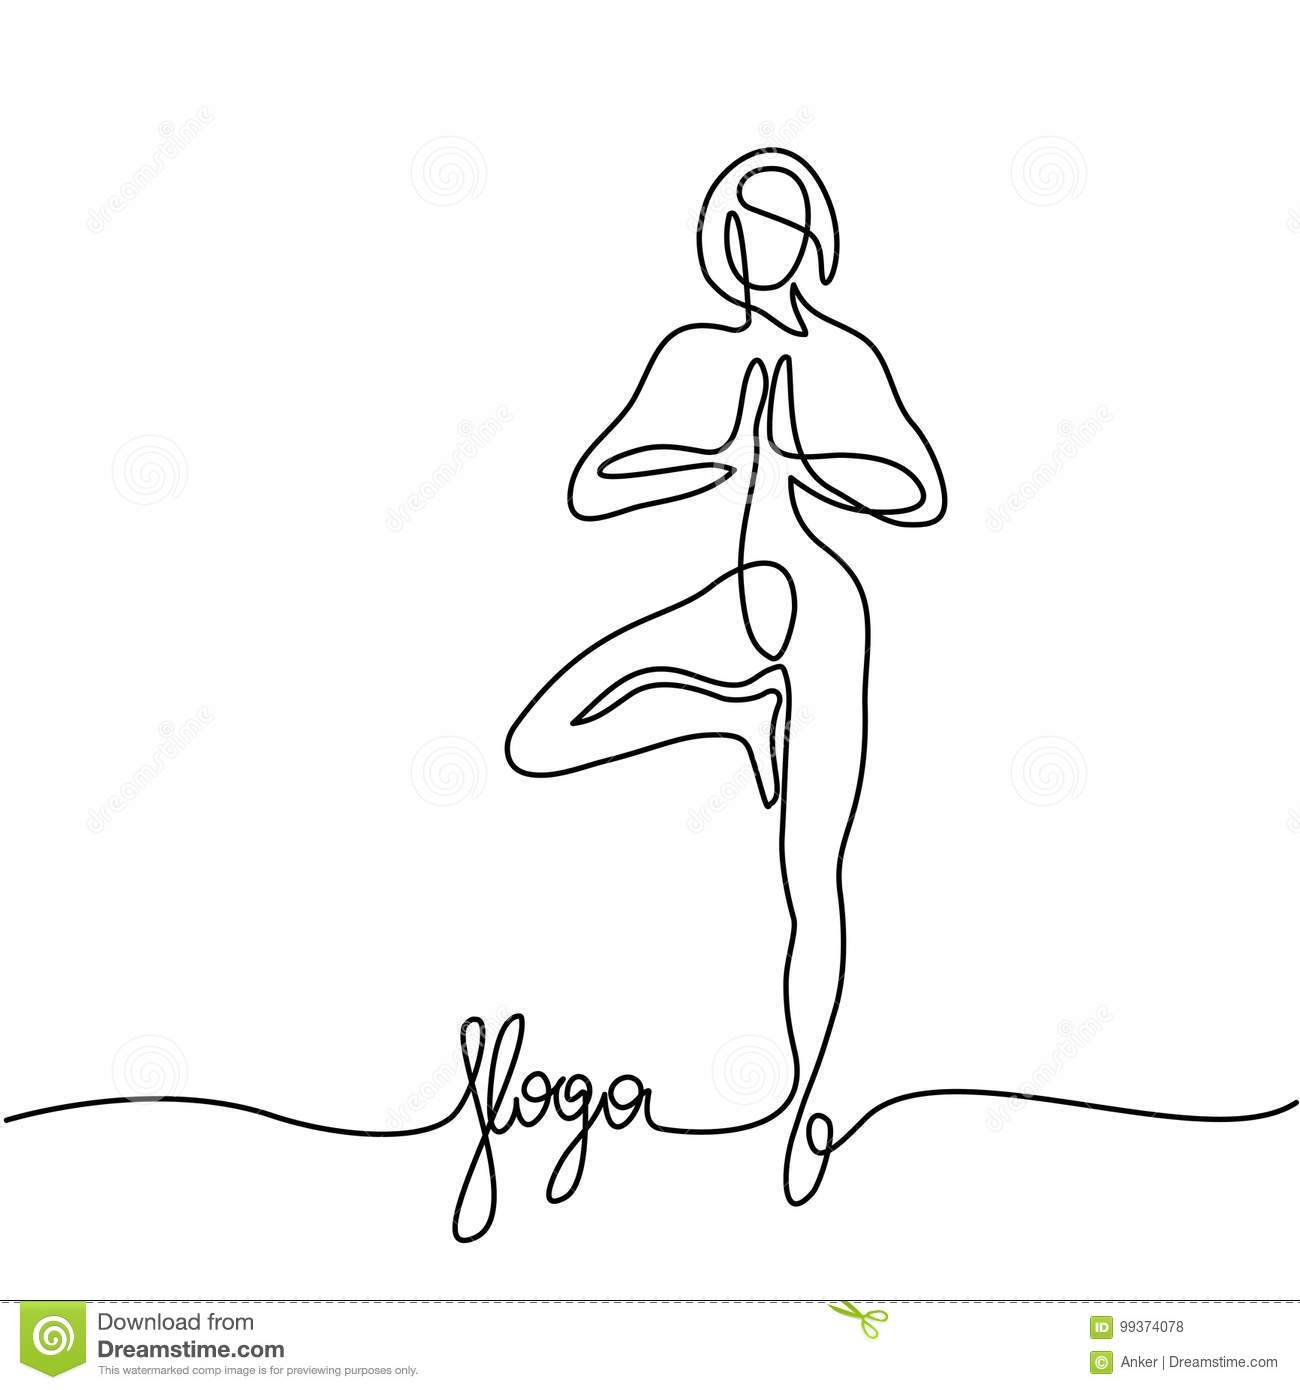 Yoga Line Drawing Woman Wiring Diagrams Opamp Diode Laser Driver Circuit Diagram Tradeoficcom Doing Exercise In Pose Stock Vector Illustration Of Rh Dreamstime Com Drawn Poses